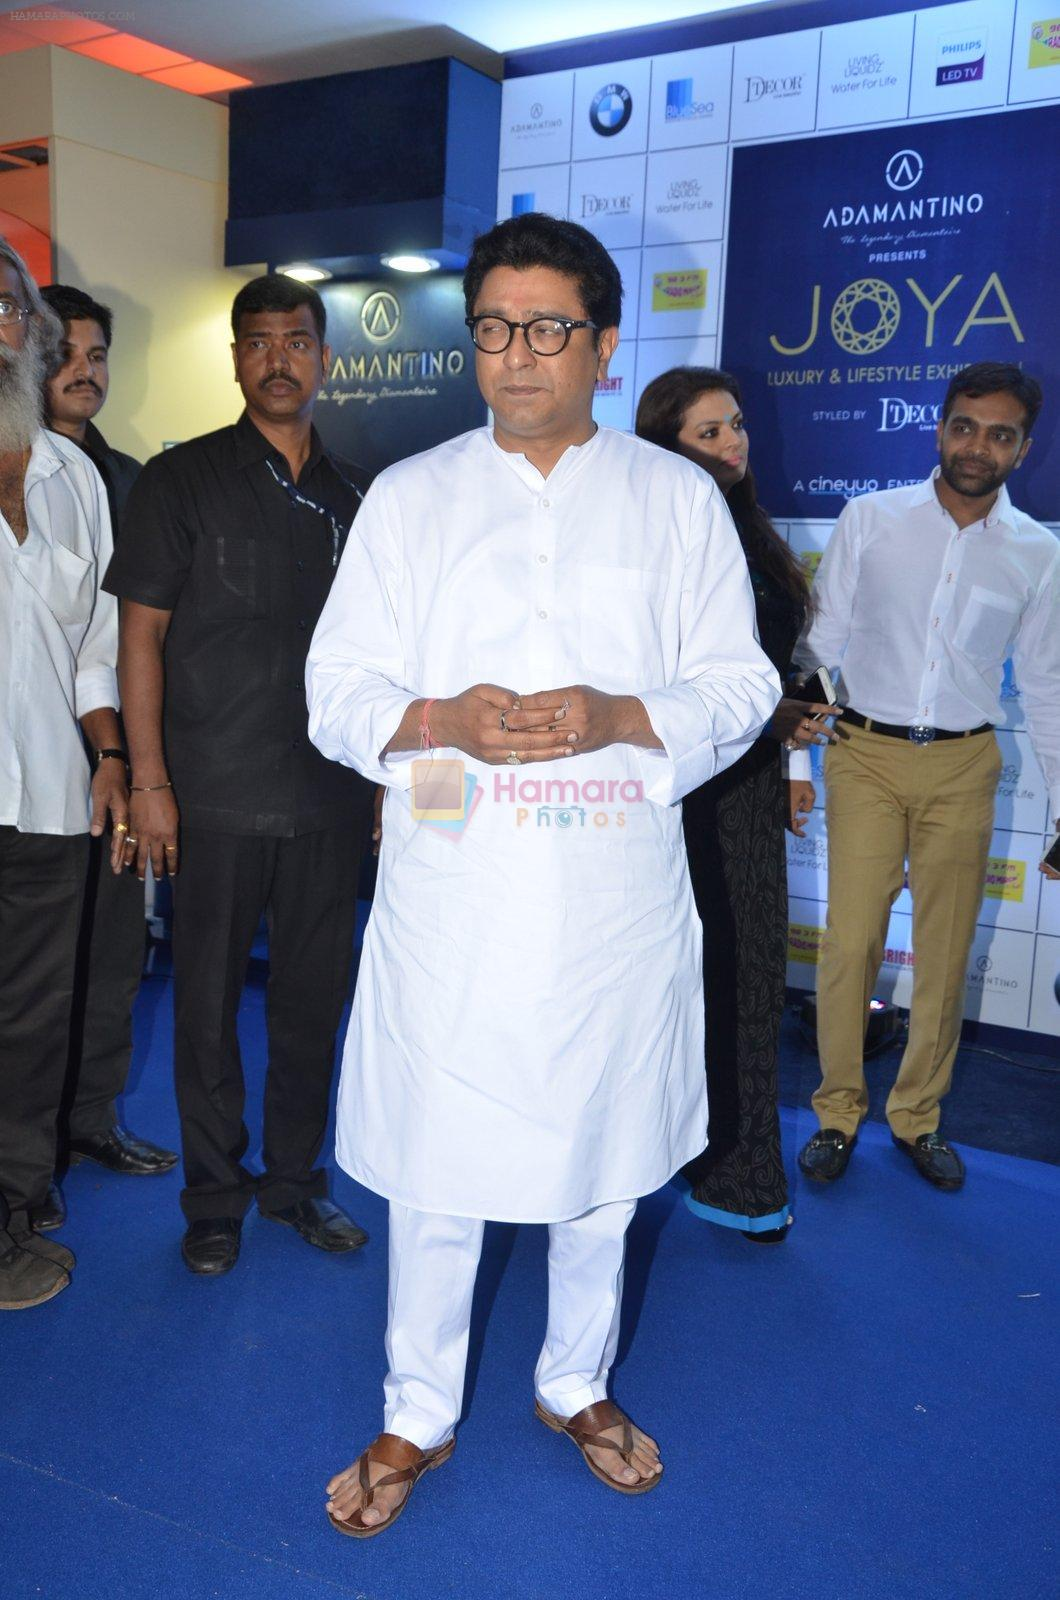 at Joya exhibition in Mumbai on 16th Aug 2016